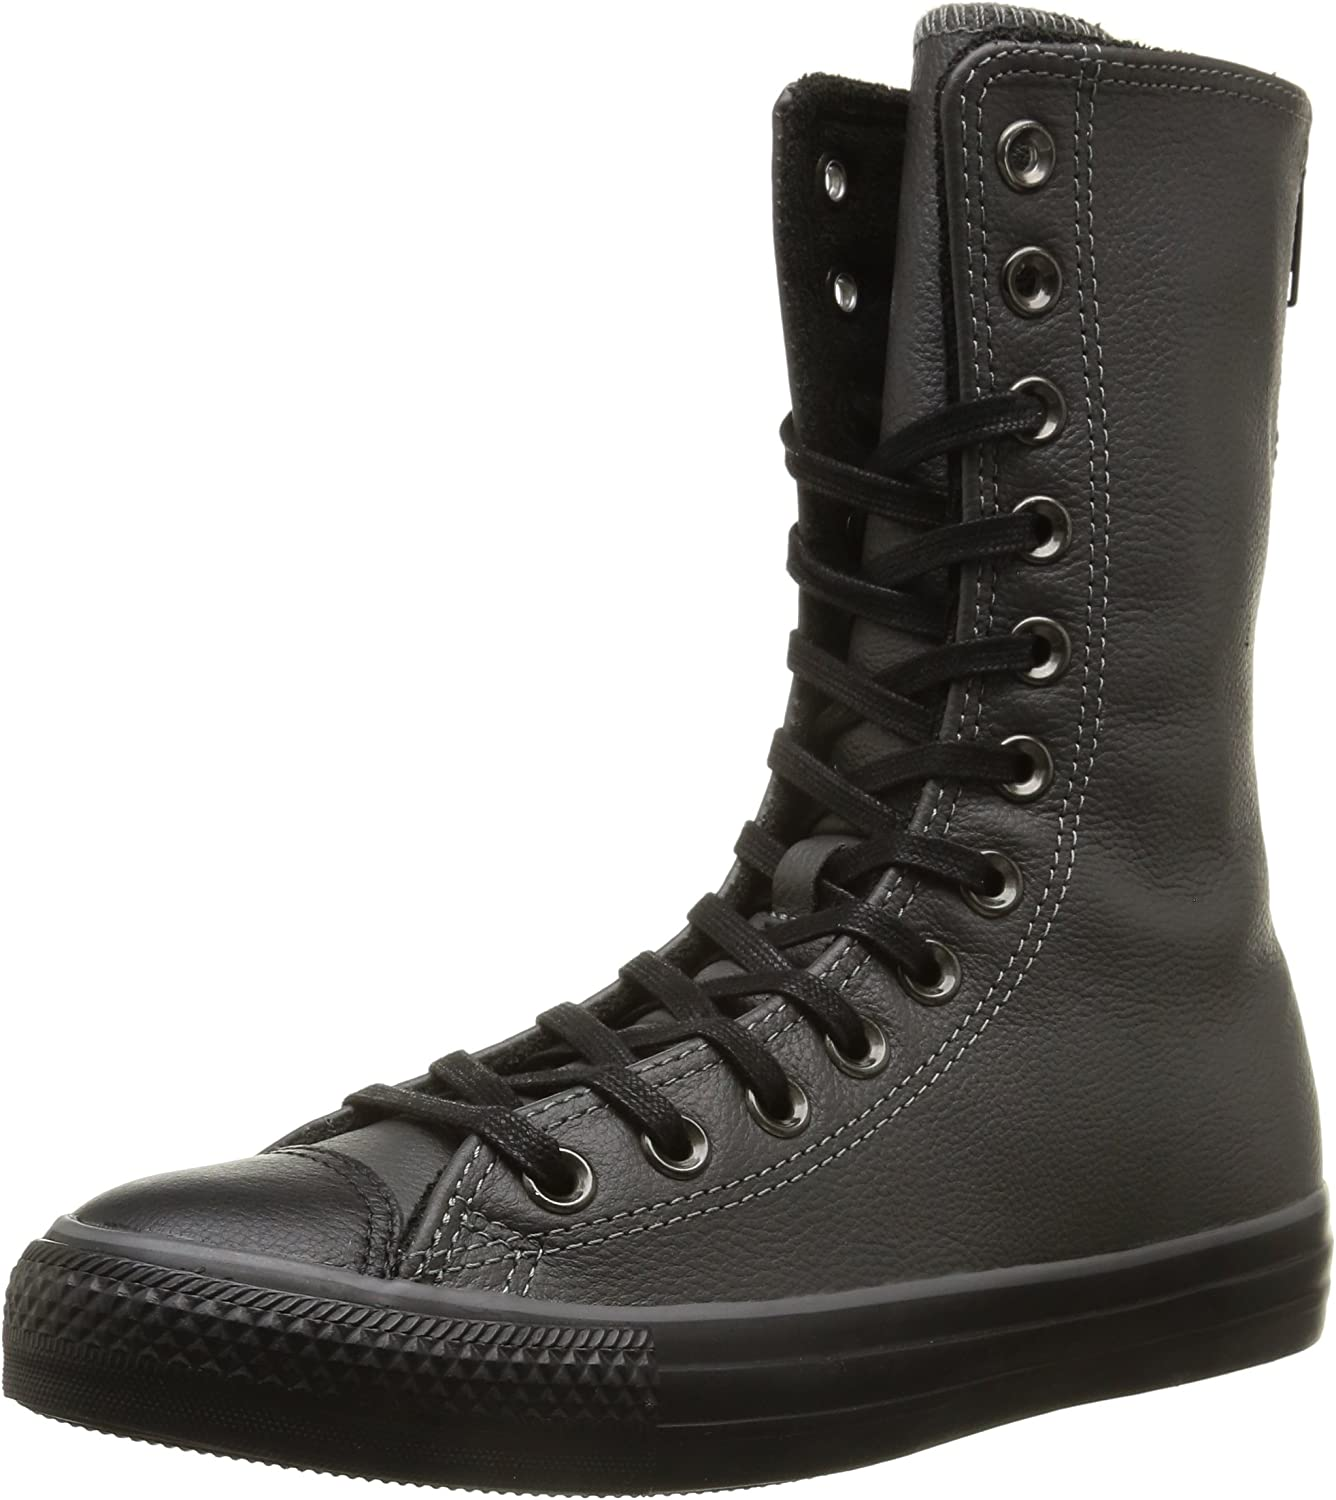 Converse All Star X-hi Zip Leather, Men's Boots